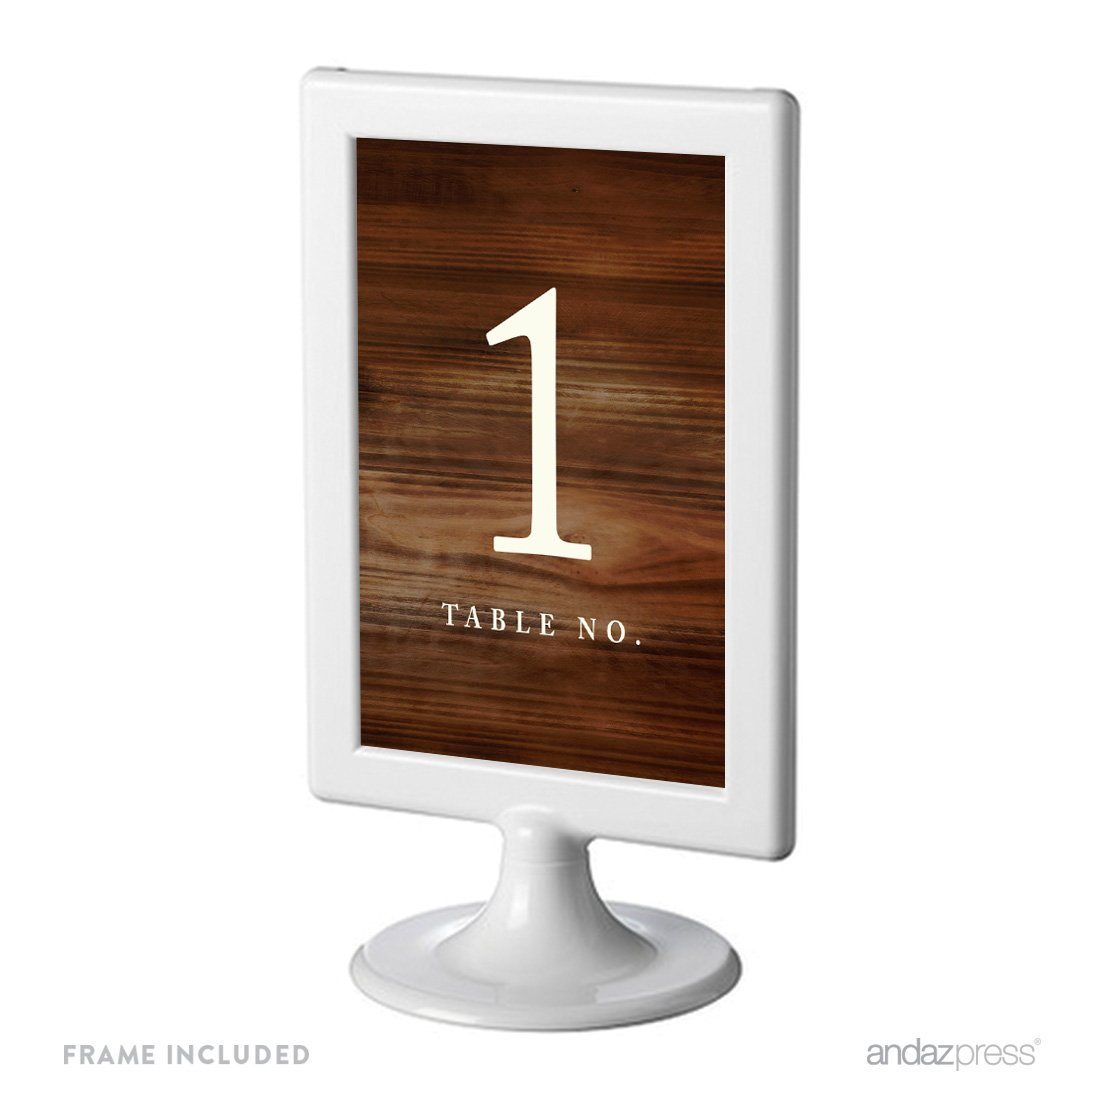 Andaz Press Framed Double-Sided Table Numbers 1-8, Rustic Wood Print, 1-Set, 4x6-inch, Includes Frames